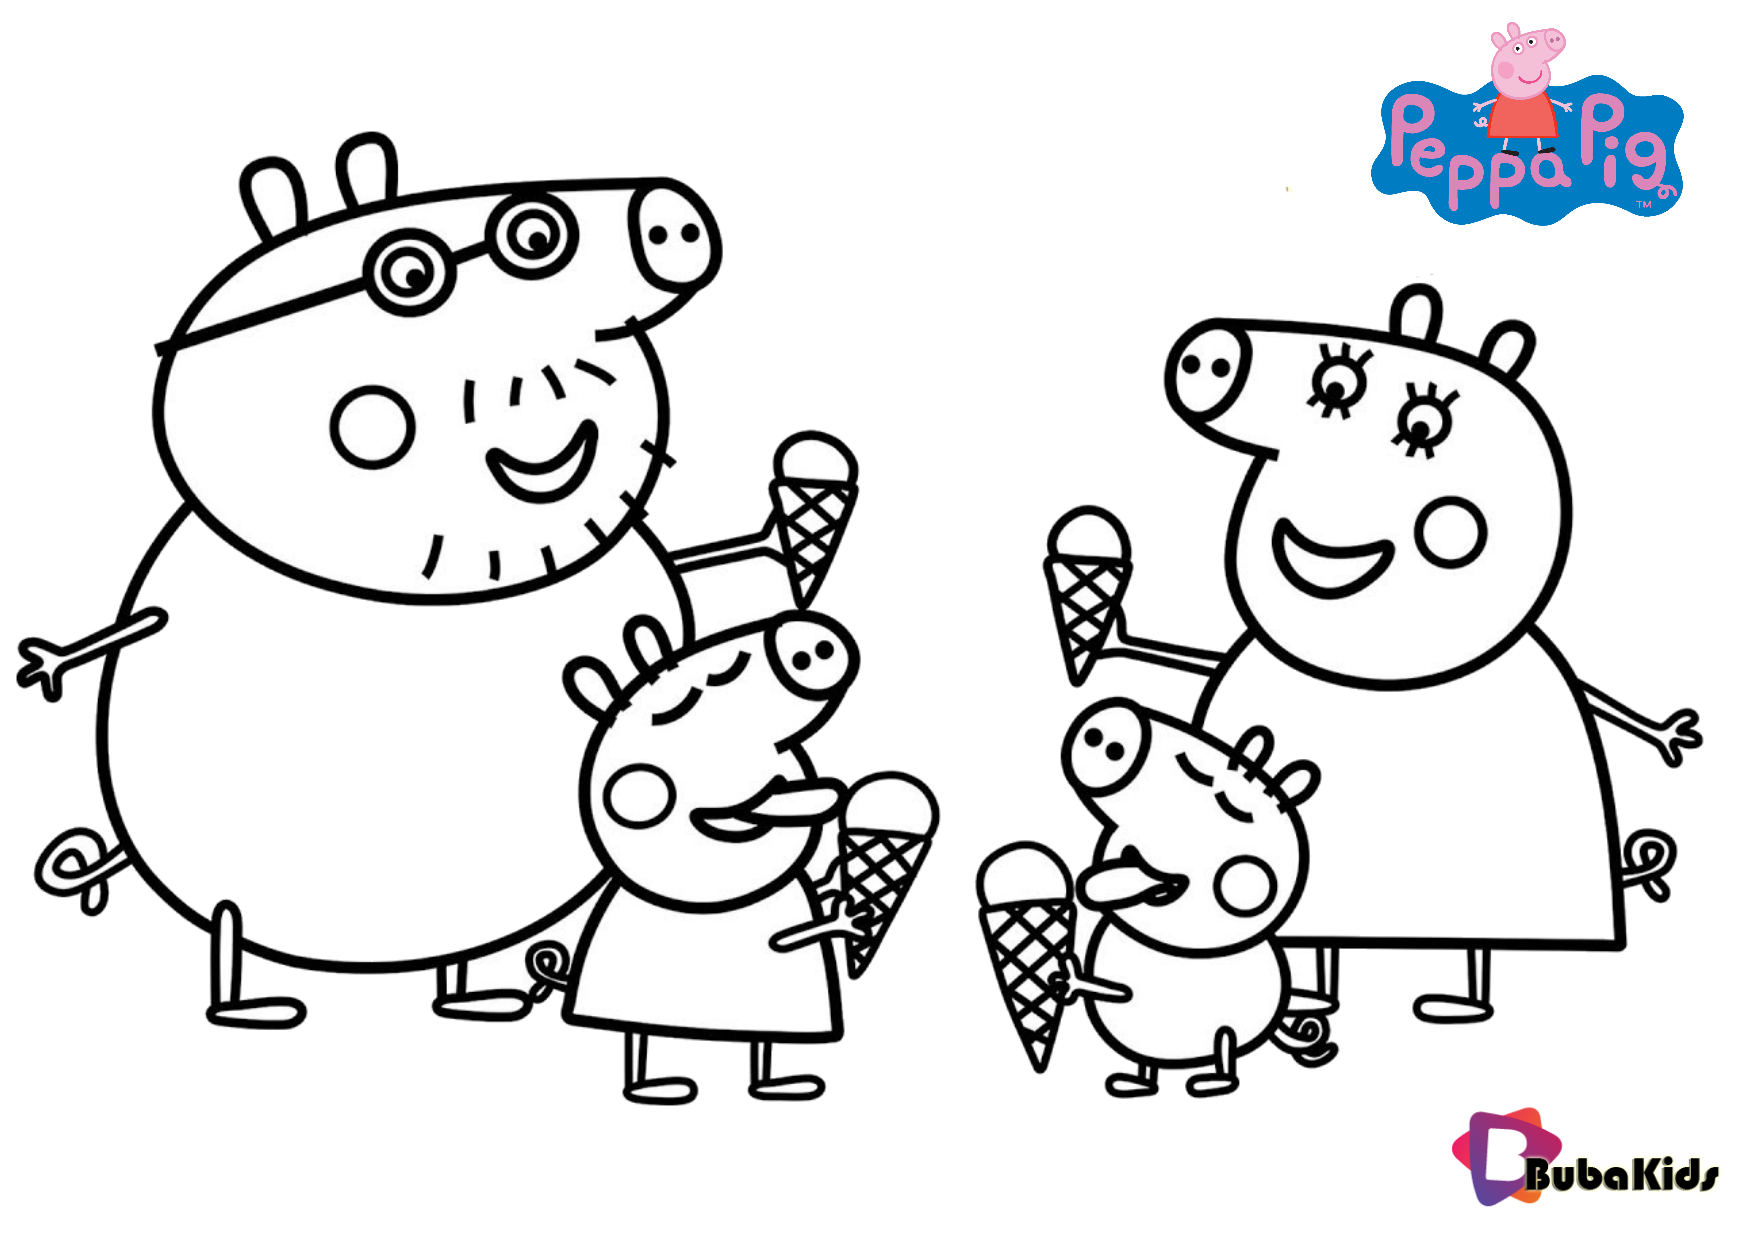 Peppa Pig Family And Ice Cream Coloring Pages Collection Of Cartoon Coloring Pages For Tee Peppa Pig Coloring Pages Peppa Pig Colouring Cartoon Coloring Pages